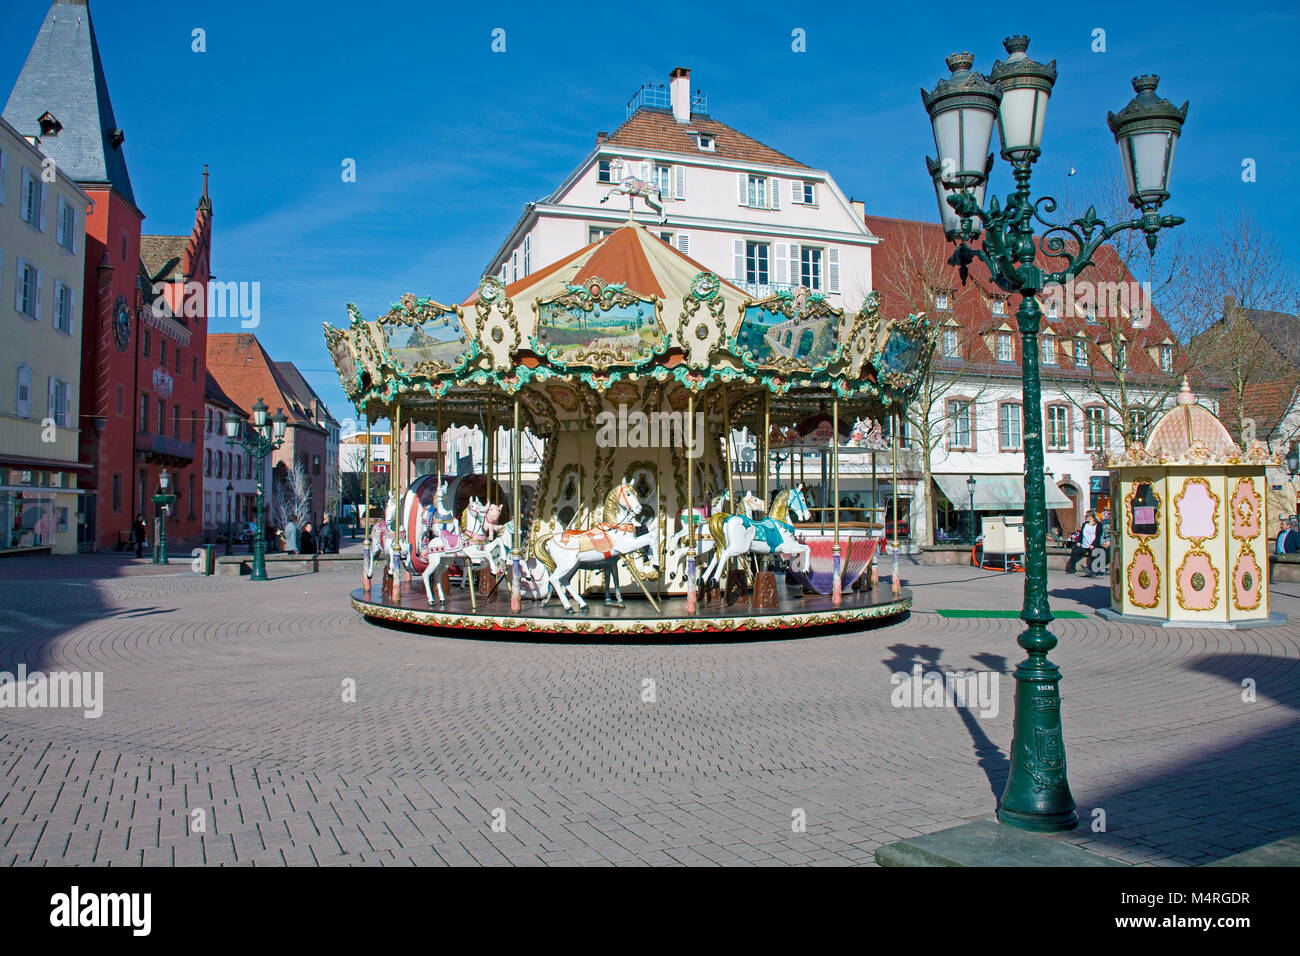 Old historical children's merry-go-round at Haguenau, Alsace, France, Europe Stock Photo